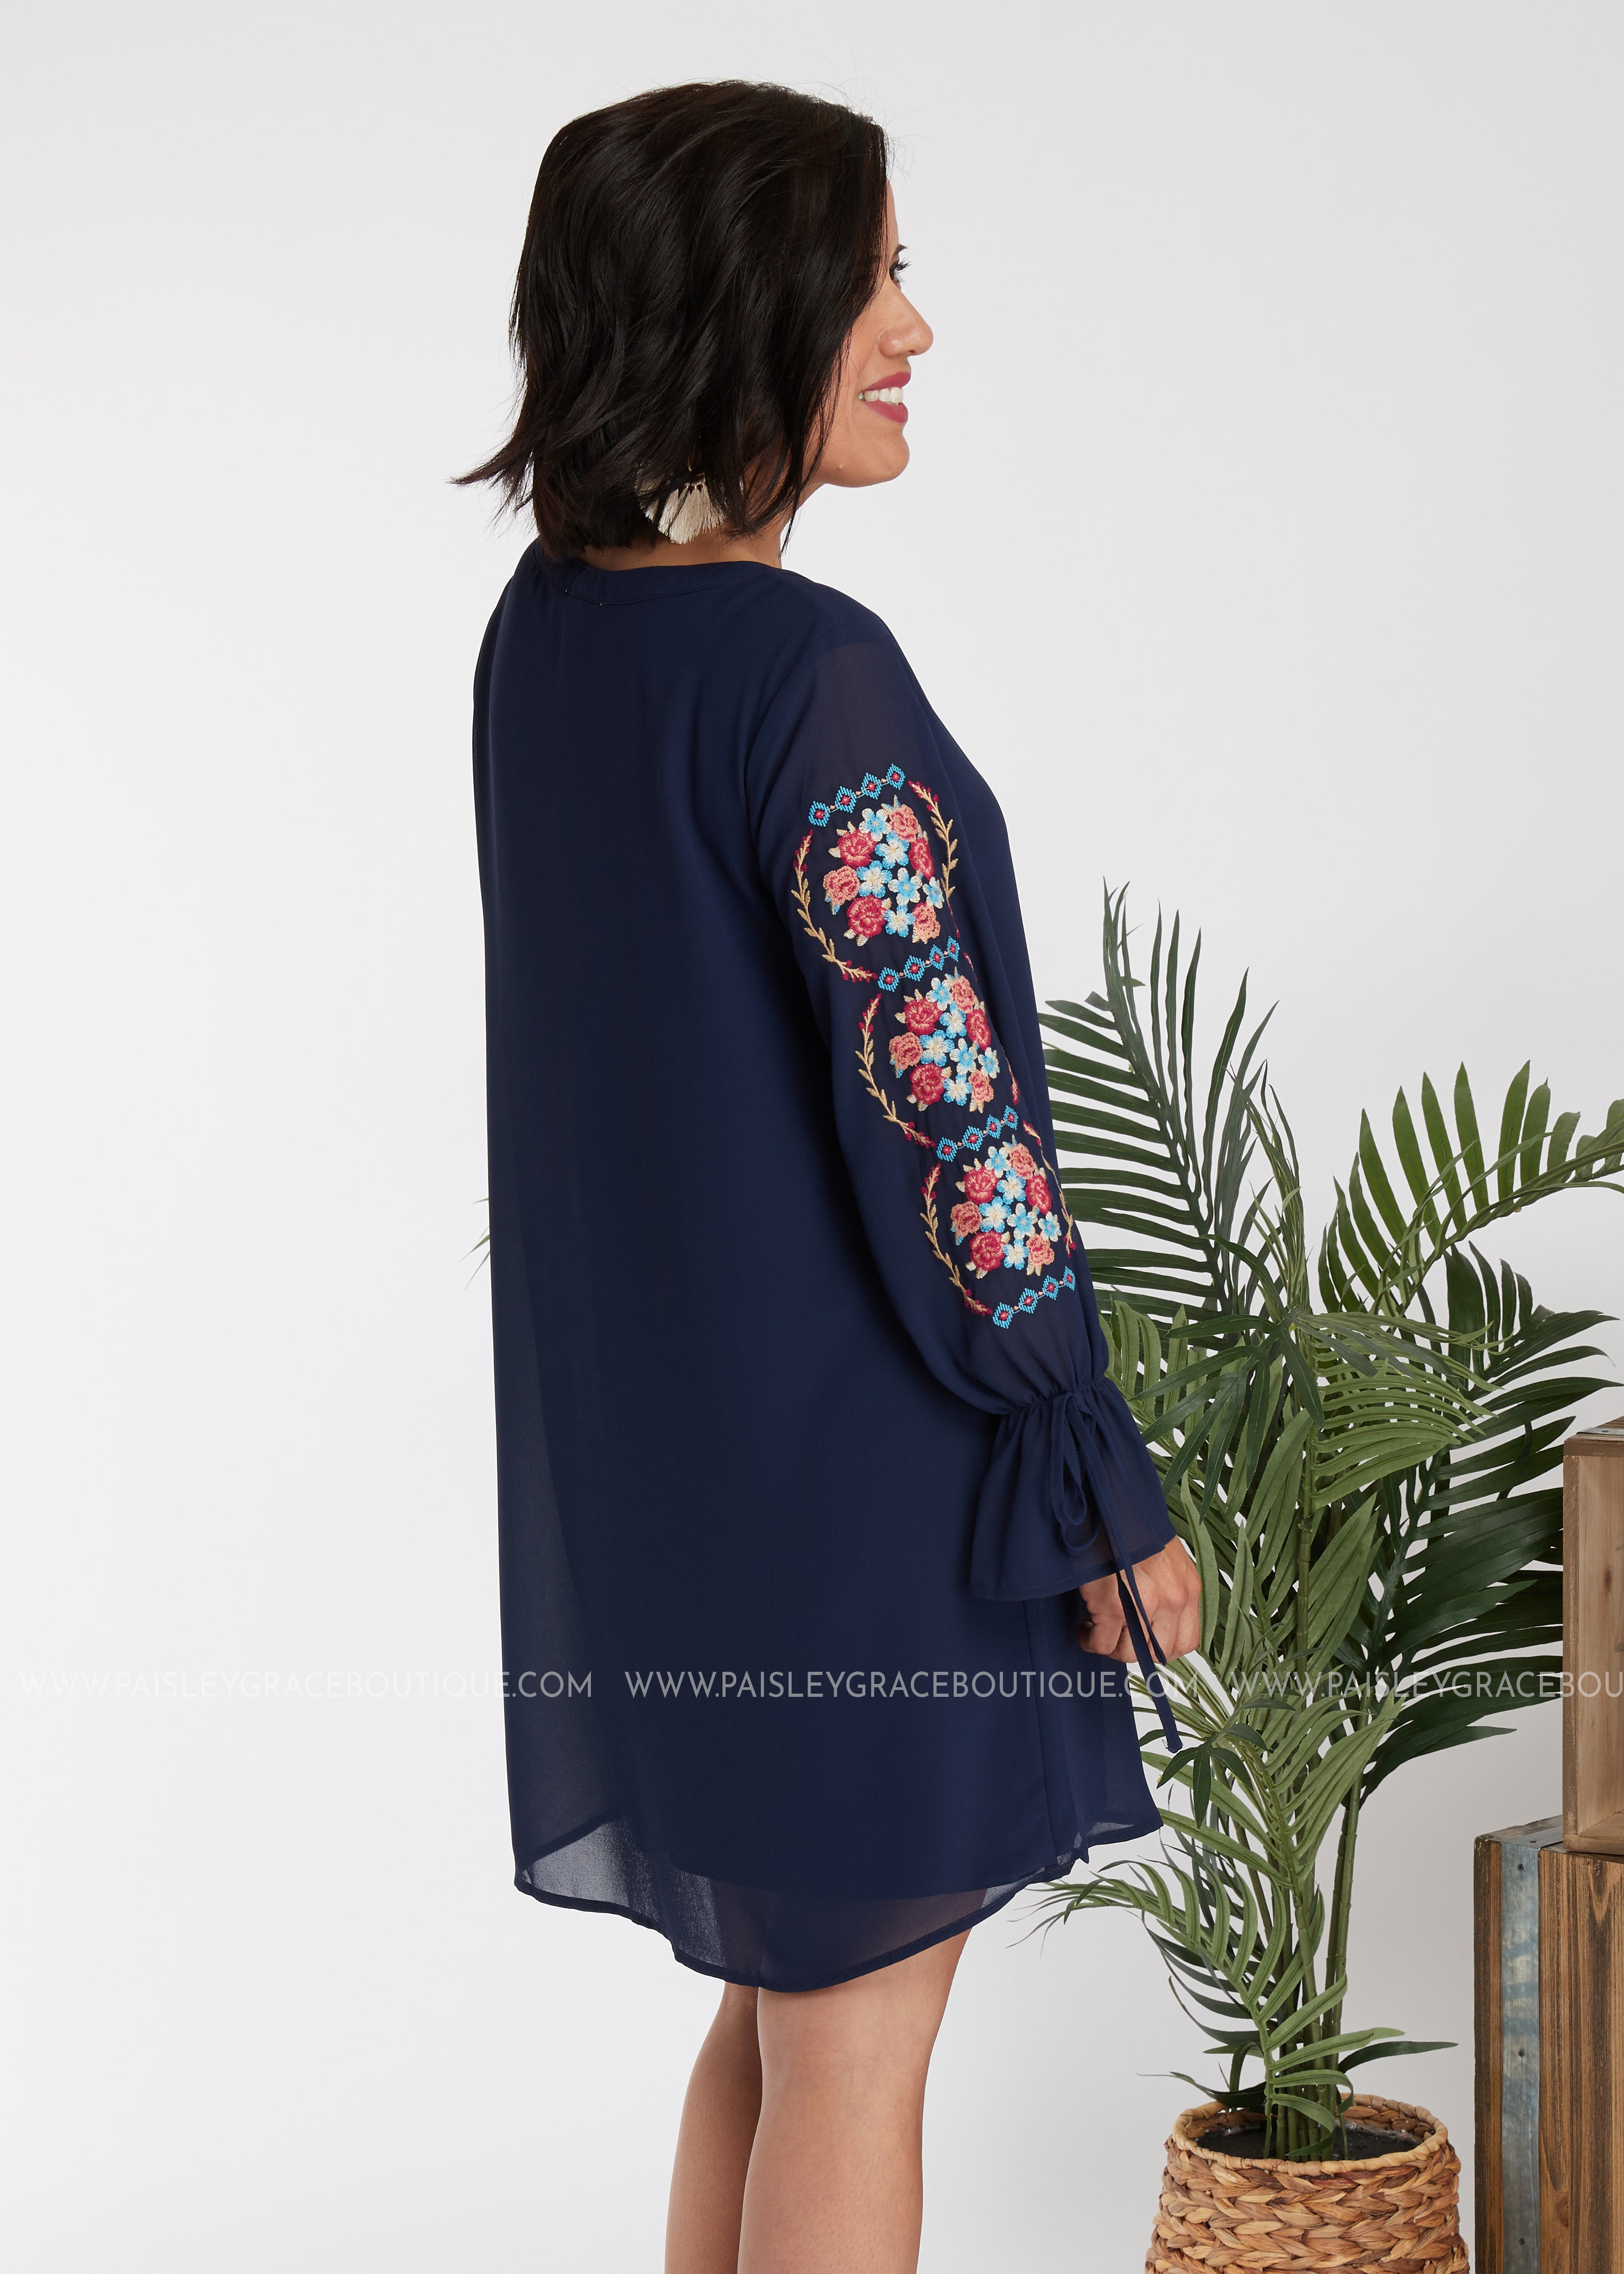 Marisol Embroidered Dress - NAVY